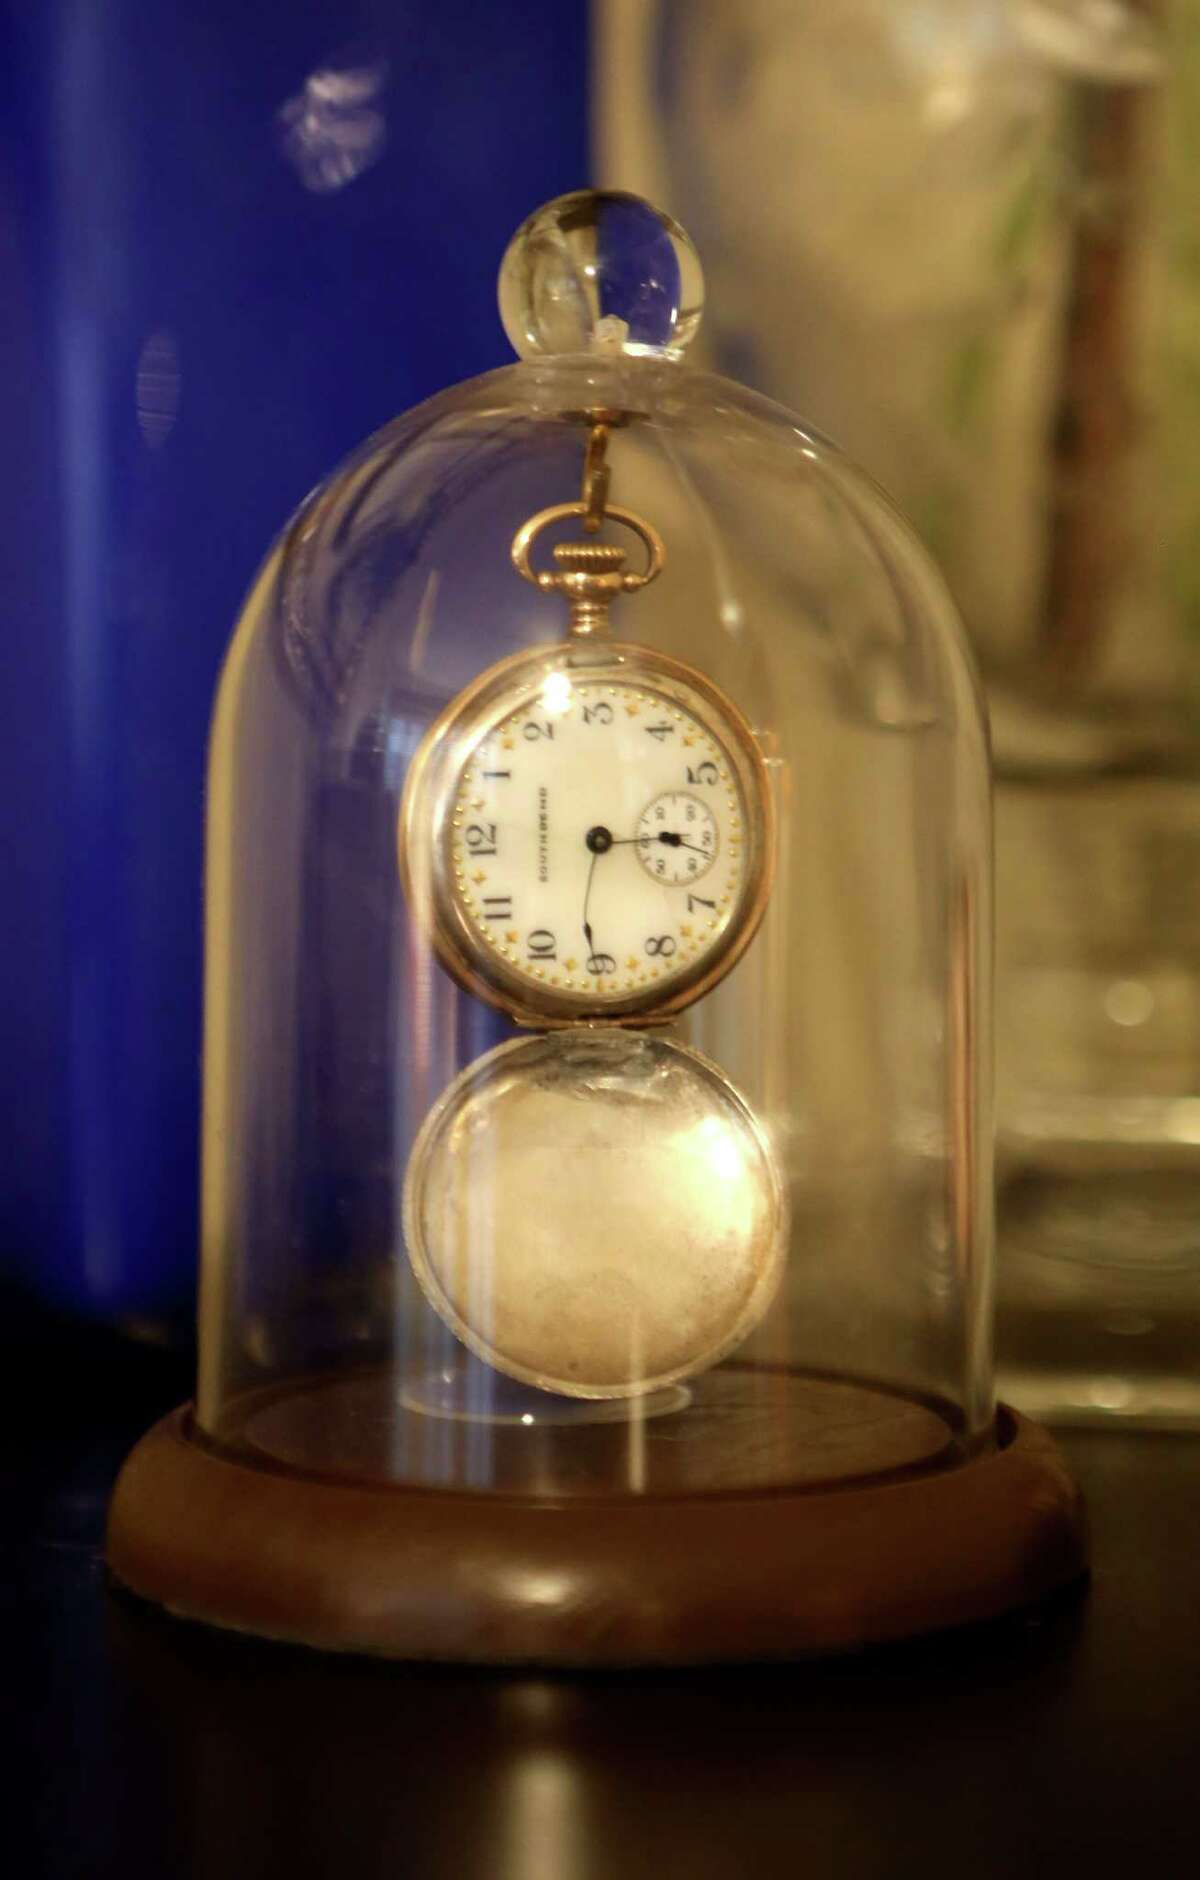 A pocket watch is preserved in a dome in the home of Paige Blend and Chris Berry .